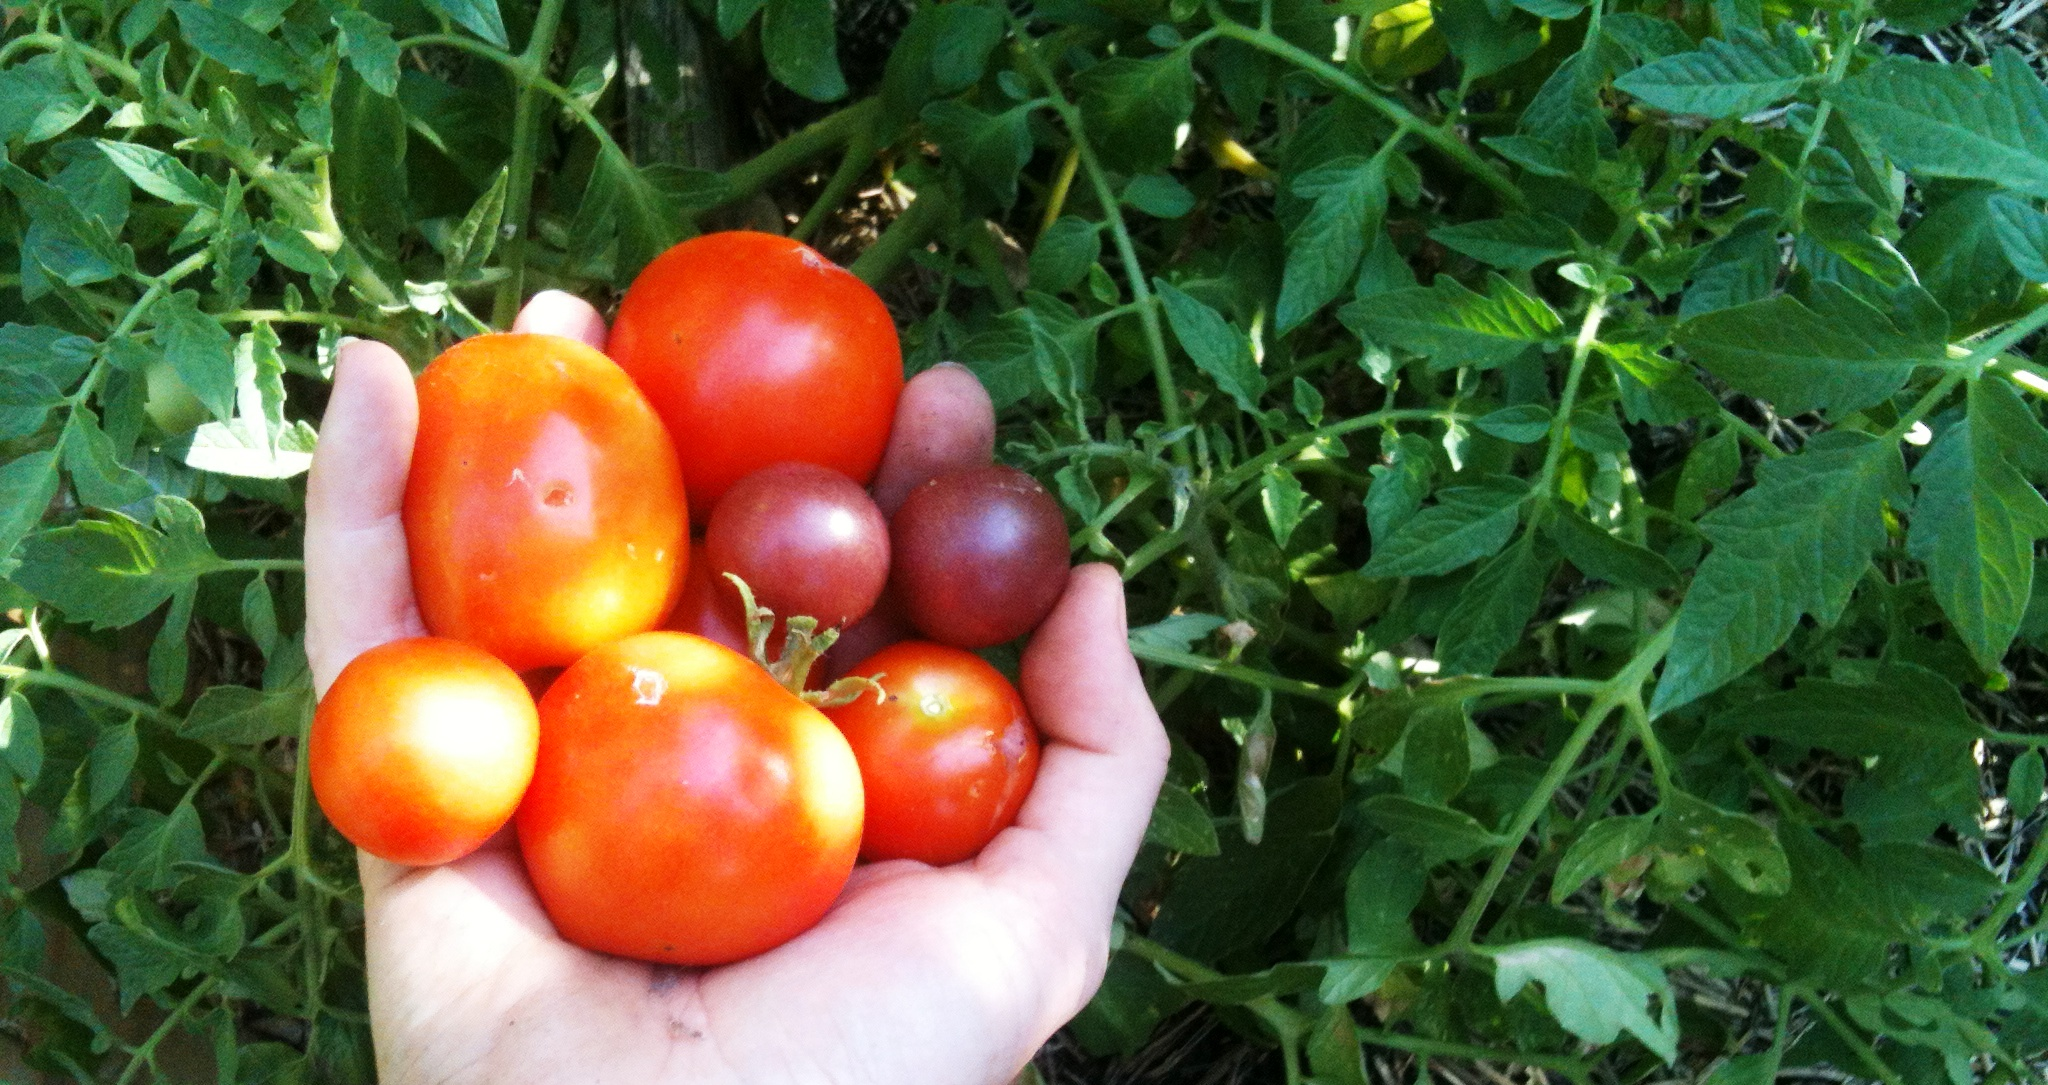 Your friendly neighbourhood tomato growing guide: Step 1. Choosing the right tomato for you